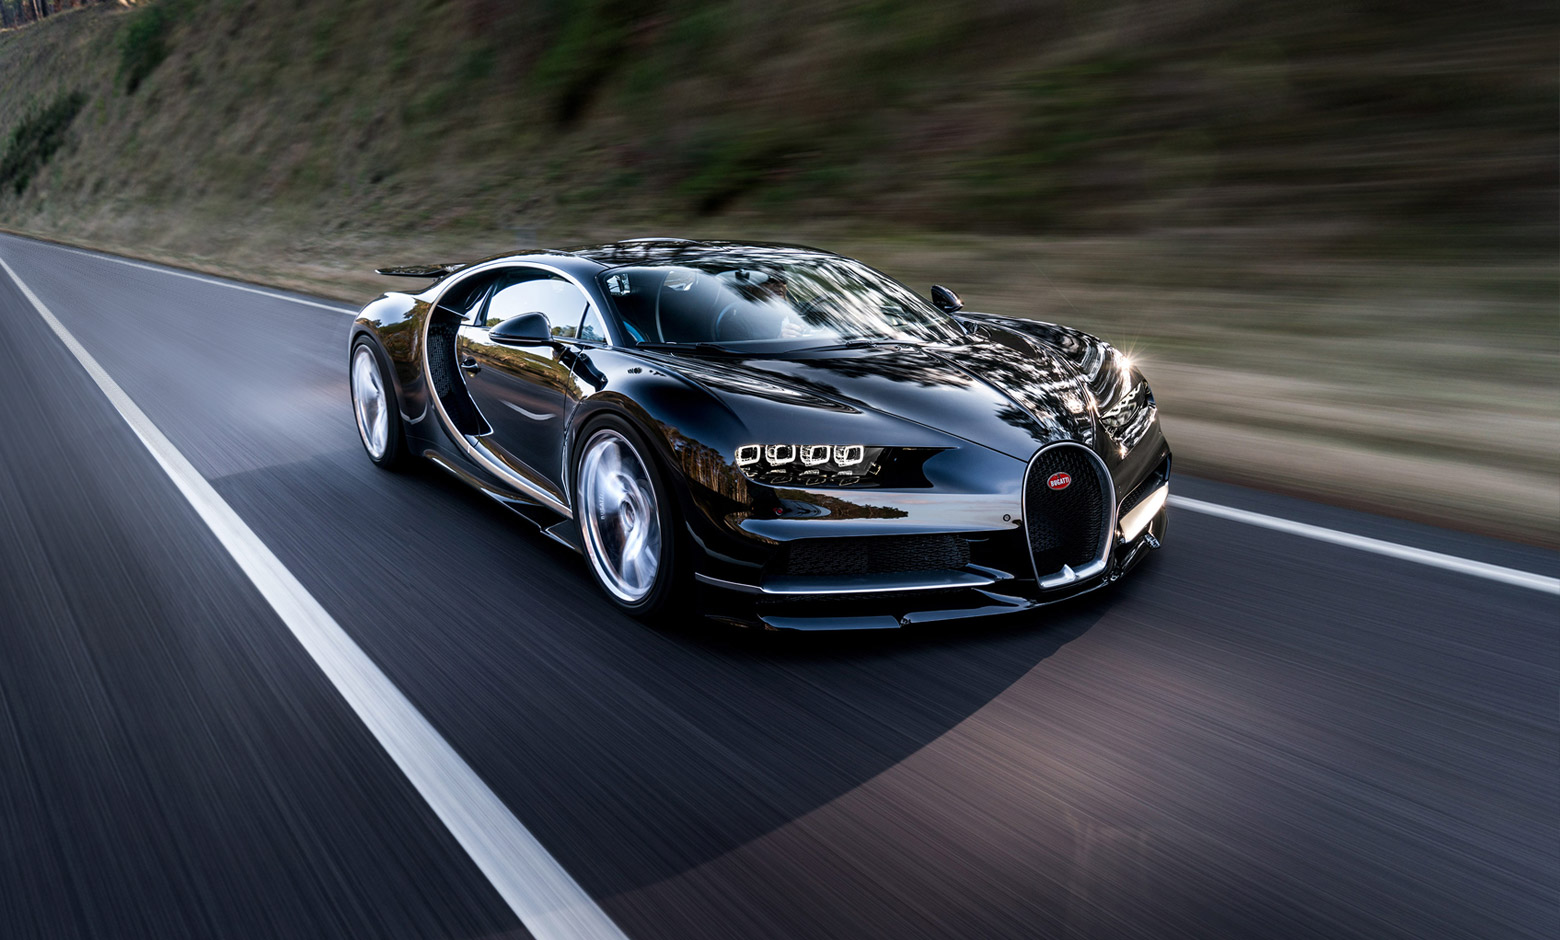 chiron at Bugatti Chiron: Worlds 2nd fastest car in 2017